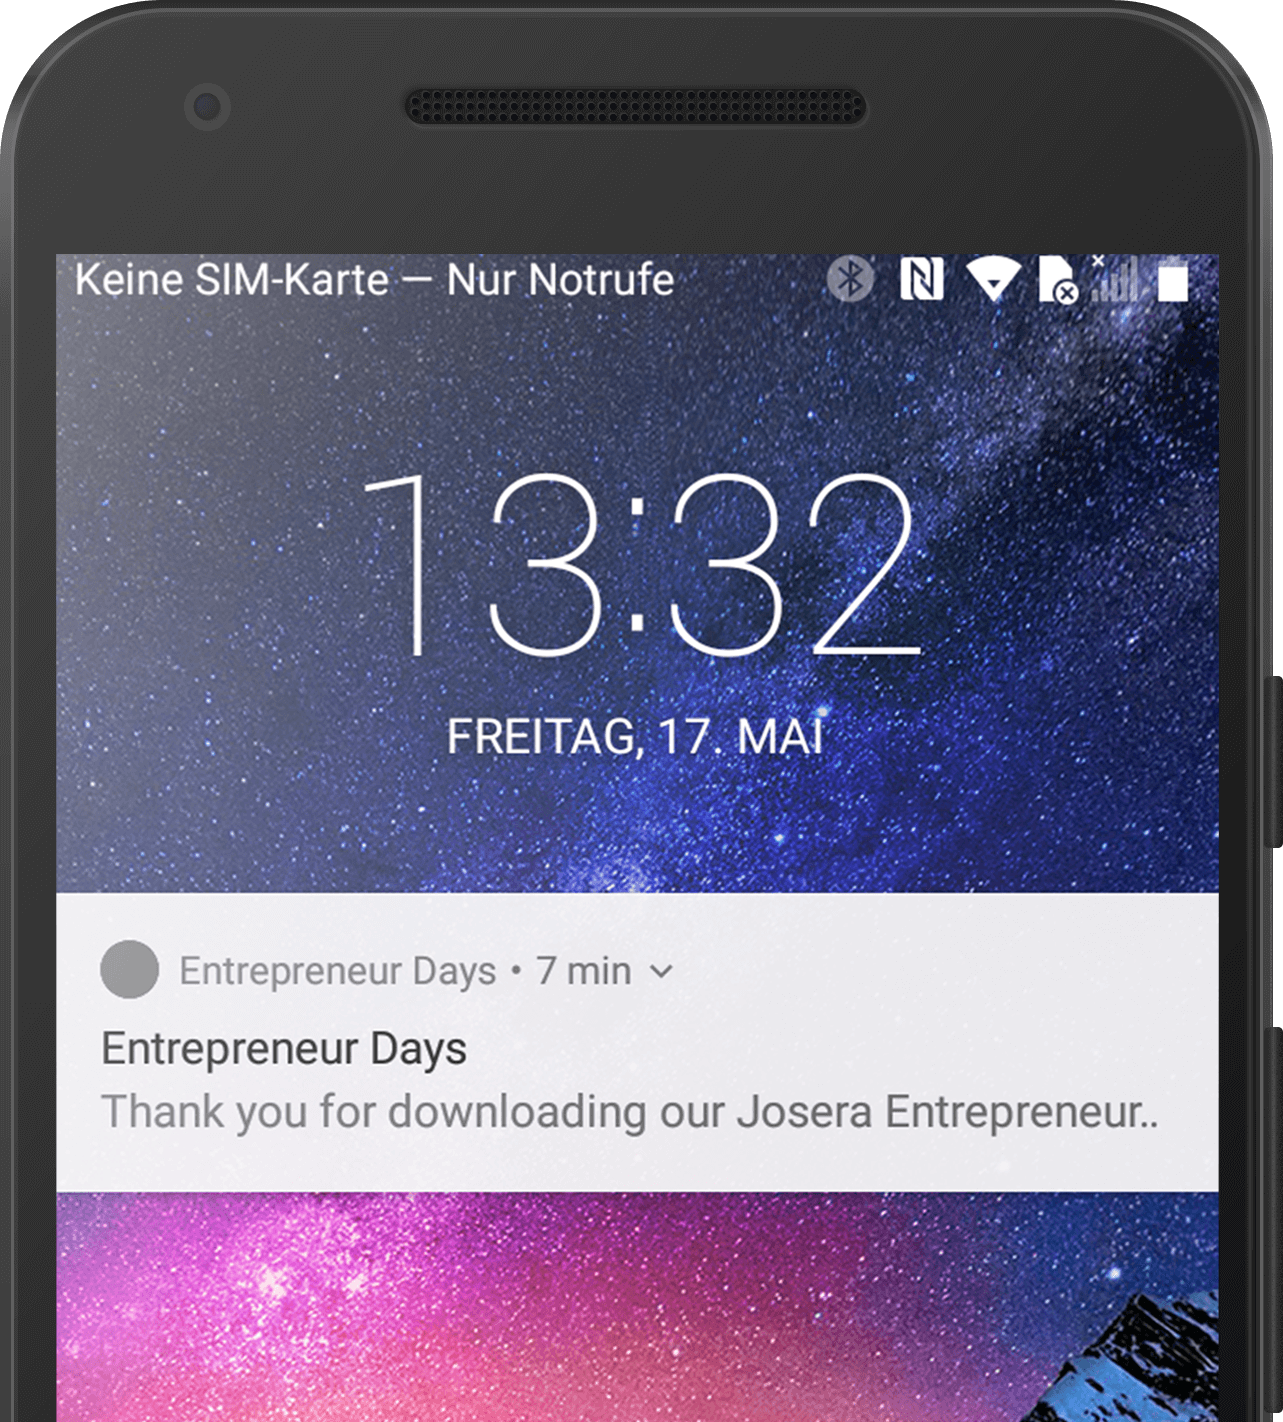 app-push-service-entwicklung.png